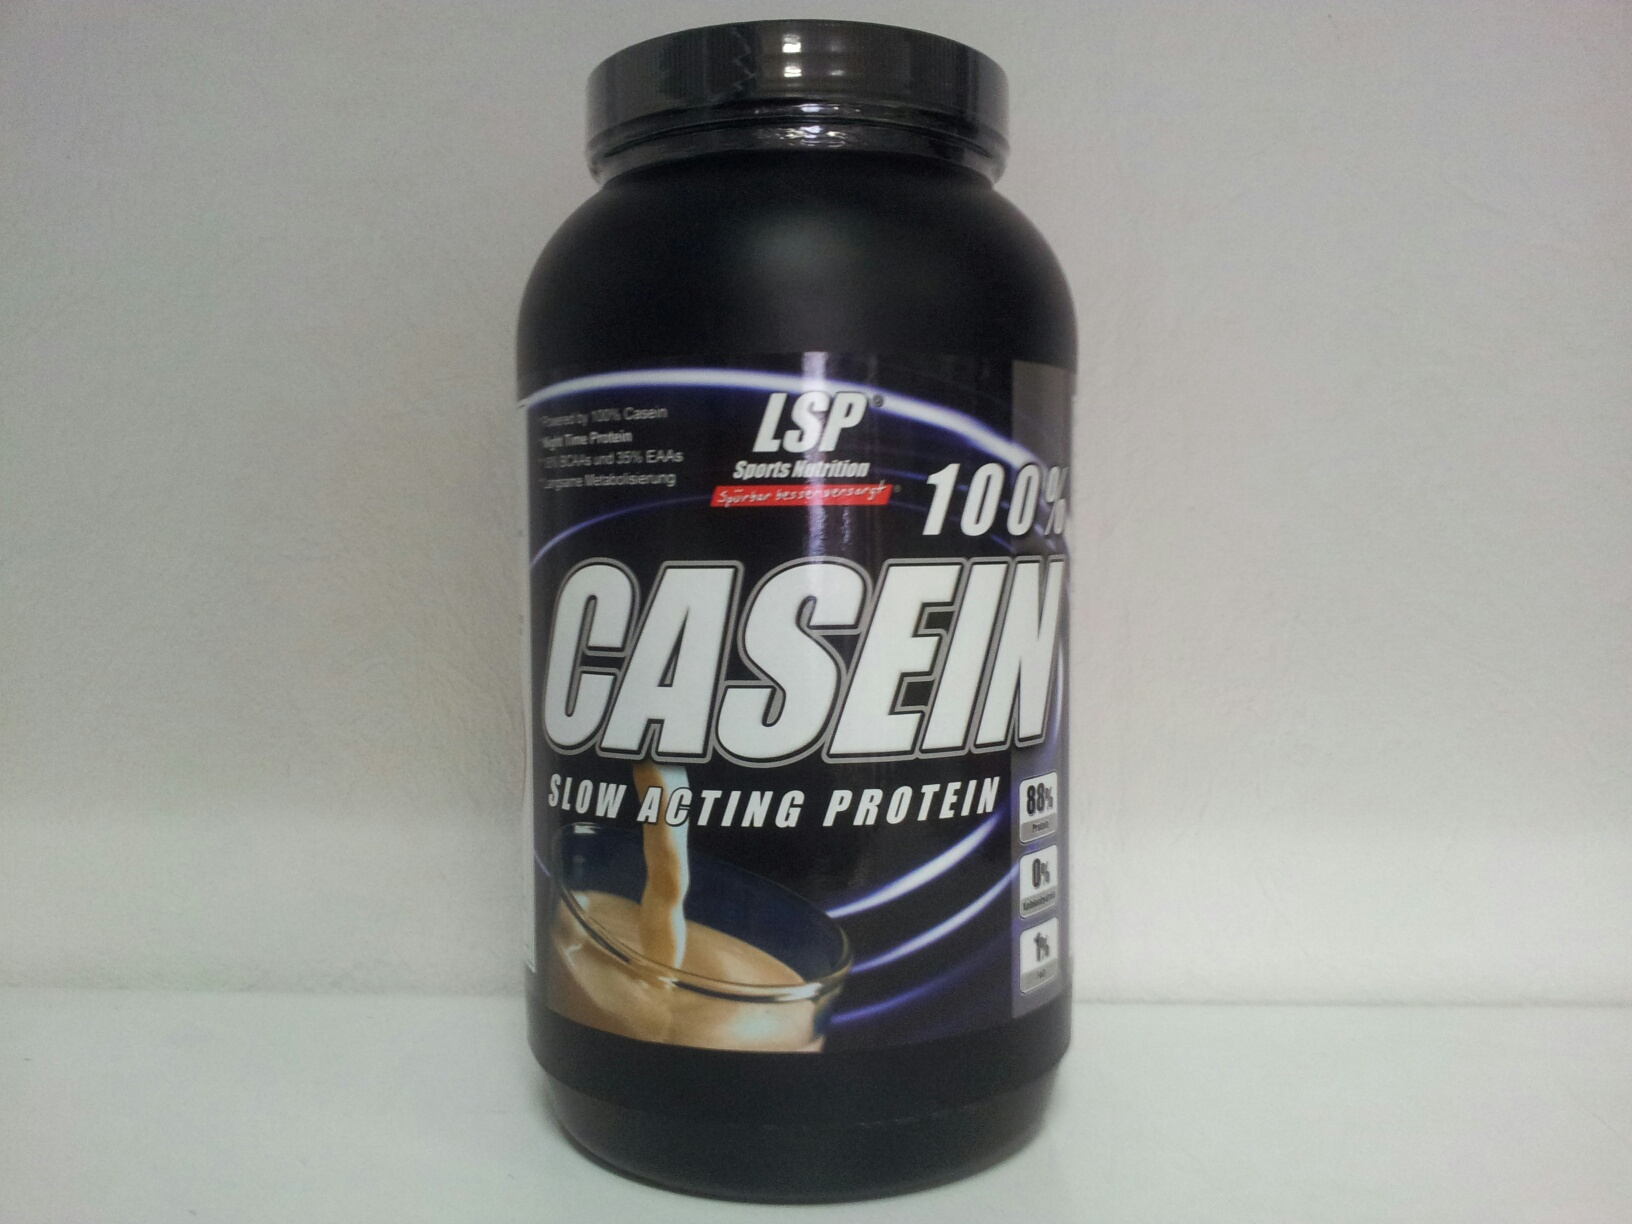 Lsp sports nutrition casein slow acting protein 1000g for Fitness depot wedding